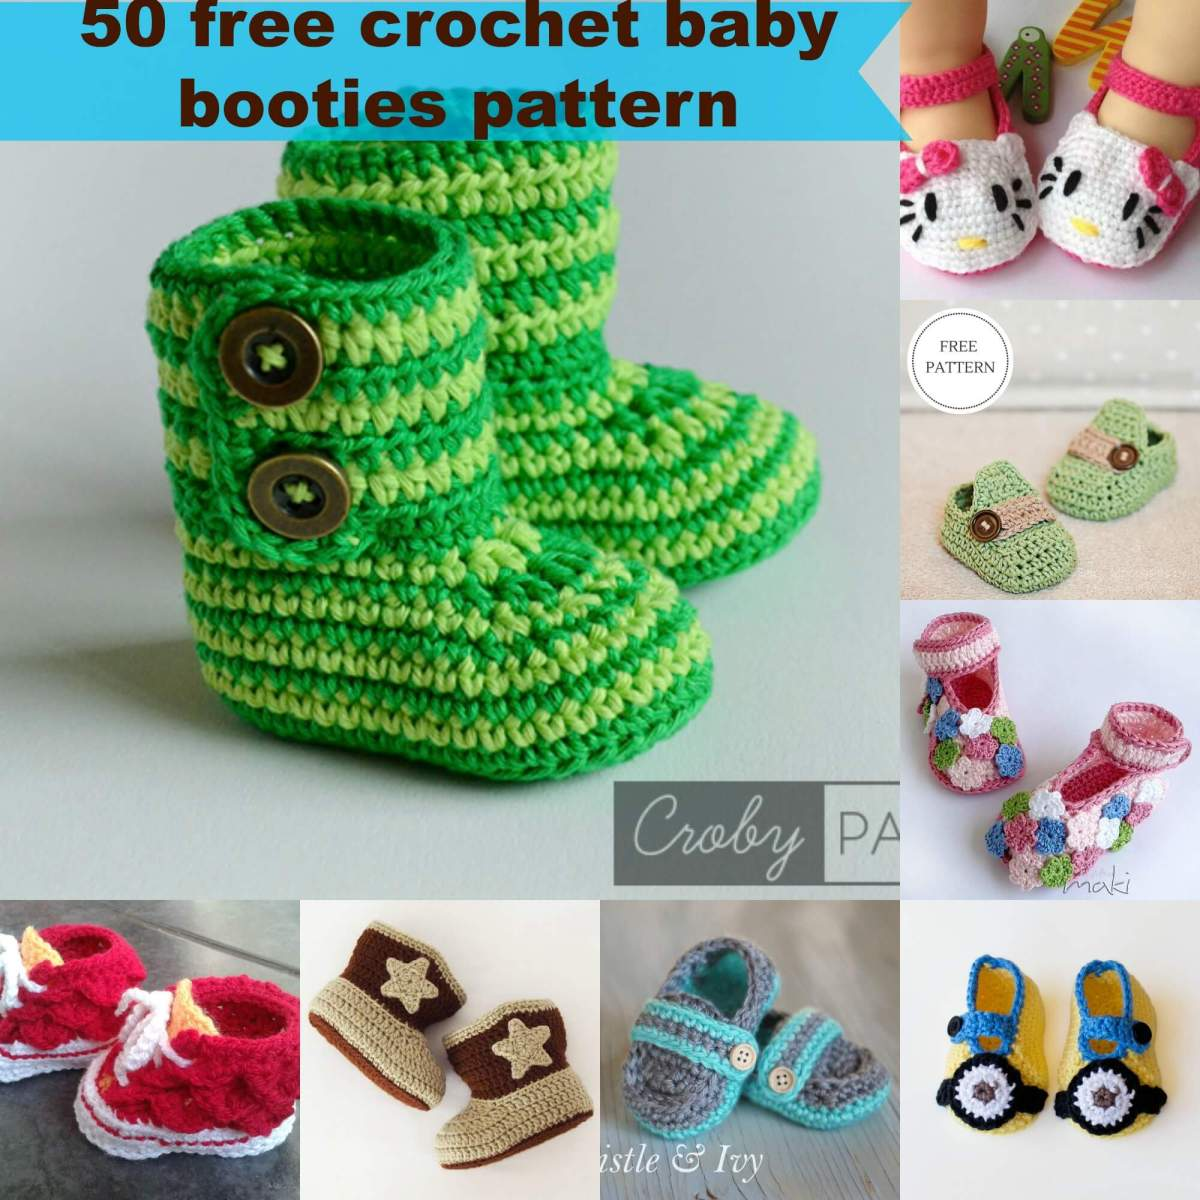 50 free crochet baby booties pattern by jennyandteddygfit12001200 bankloansurffo Image collections